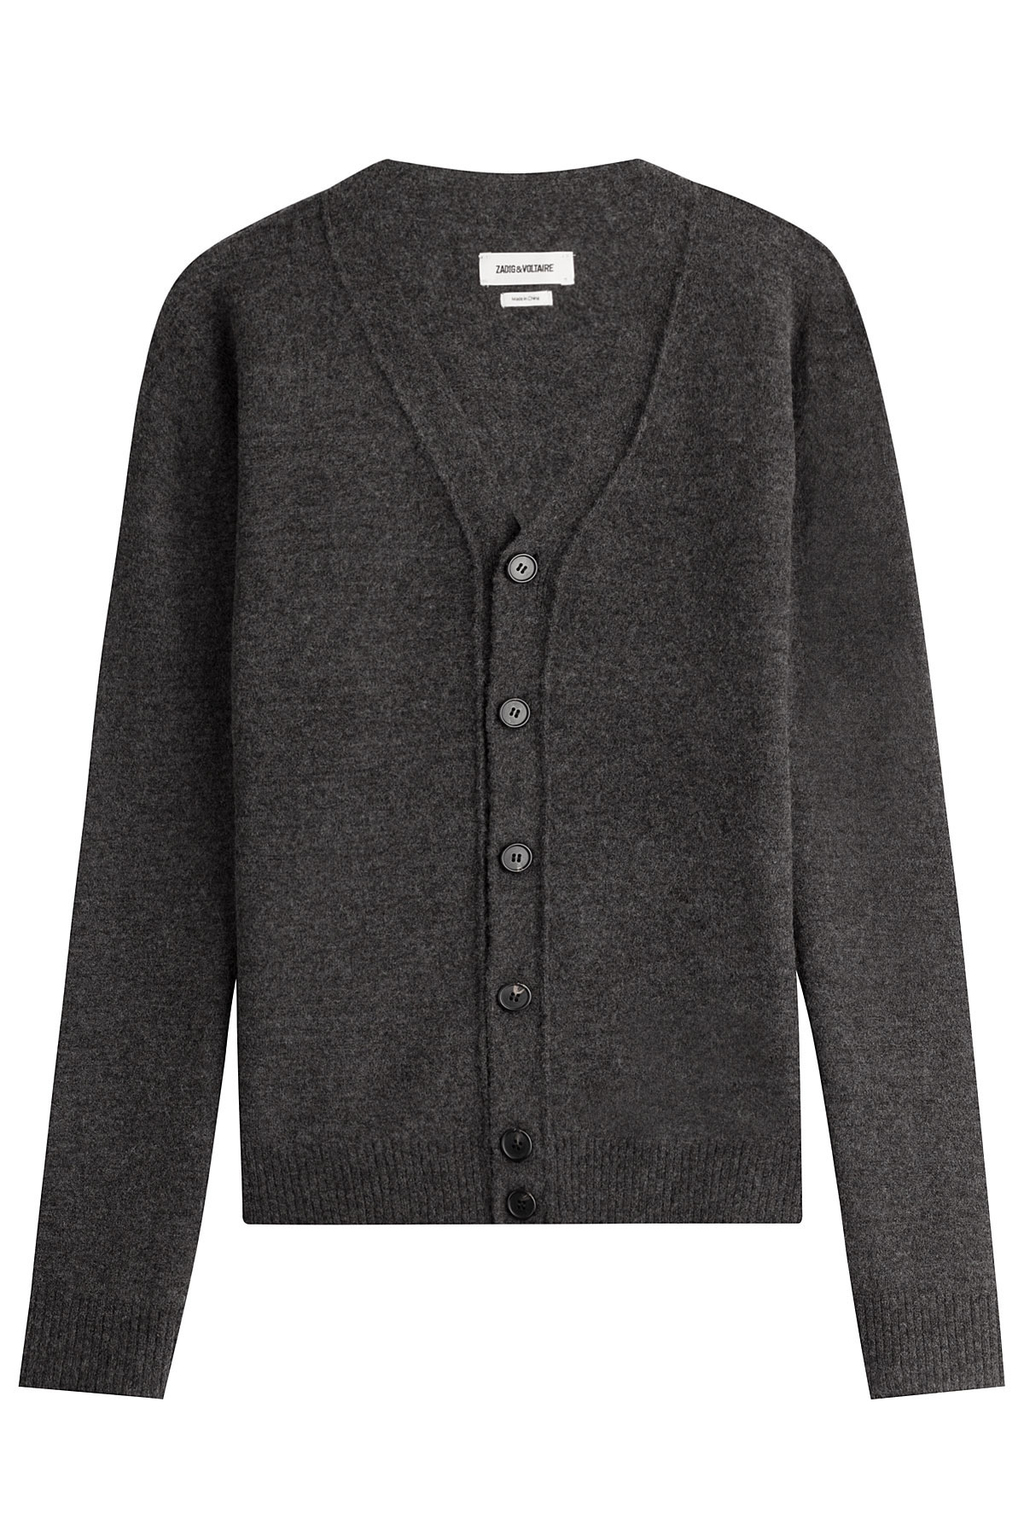 Cardigan With Wool And Yak Brown - neckline: v-neck; pattern: plain; predominant colour: charcoal; occasions: casual; length: standard; style: standard; fibres: wool - 100%; fit: standard fit; sleeve length: long sleeve; sleeve style: standard; texture group: knits/crochet; pattern type: knitted - fine stitch; season: a/w 2016